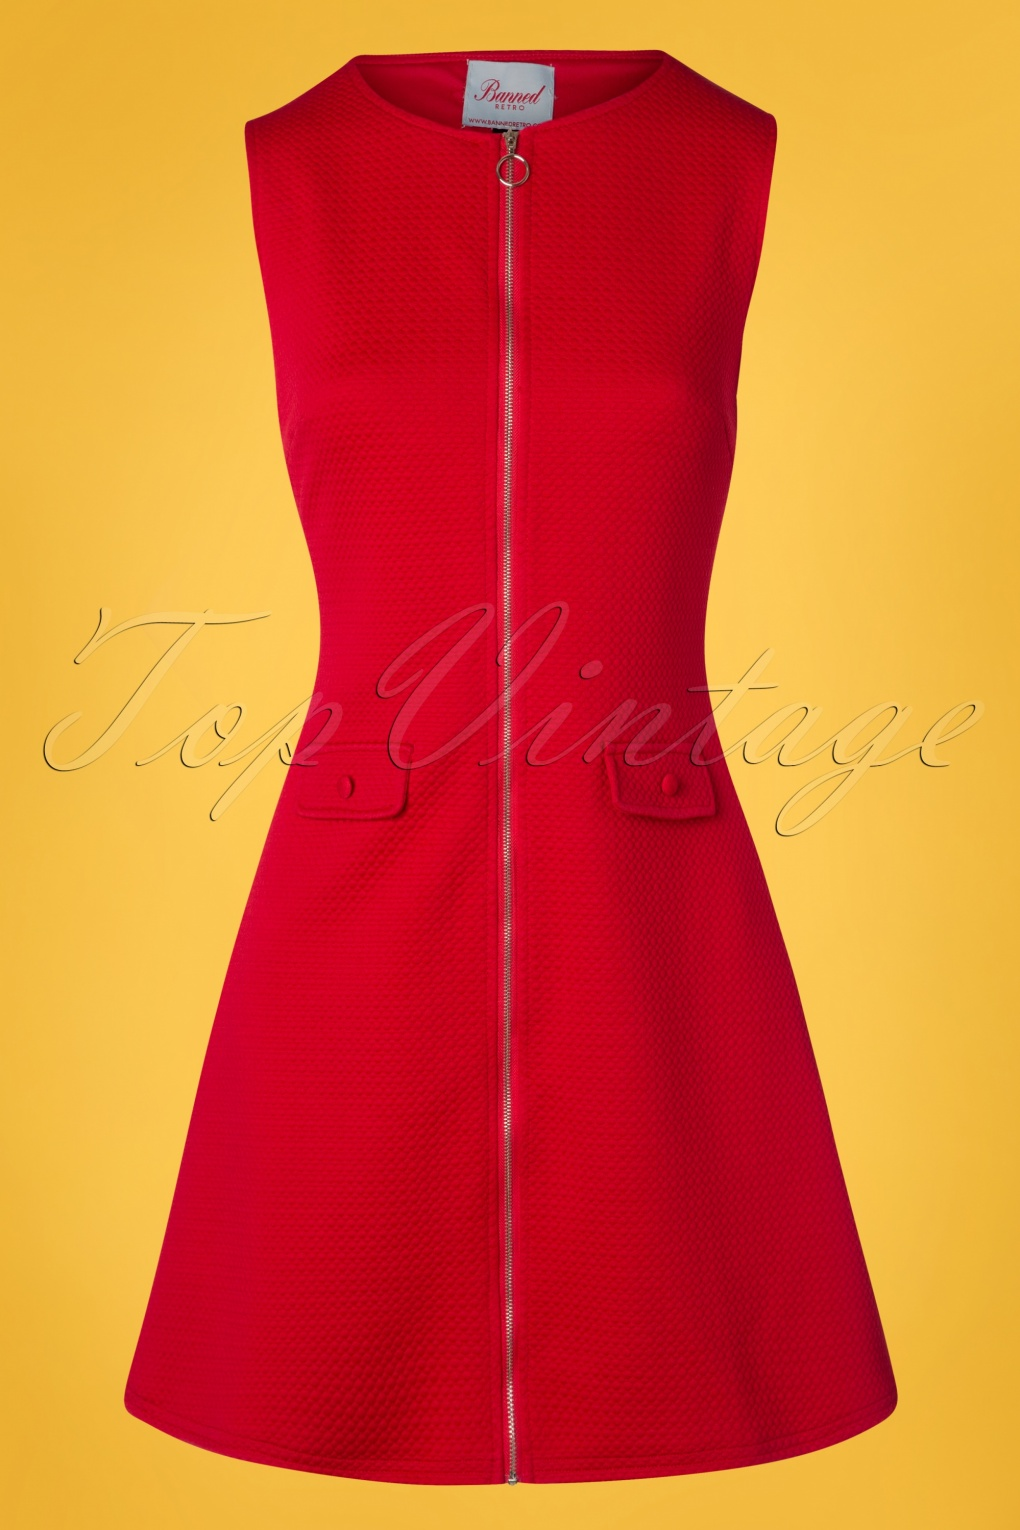 1960s Style Dresses, Clothing, Shoes UK 60s Groovy Gal Dress in Lipstick Red £42.13 AT vintagedancer.com